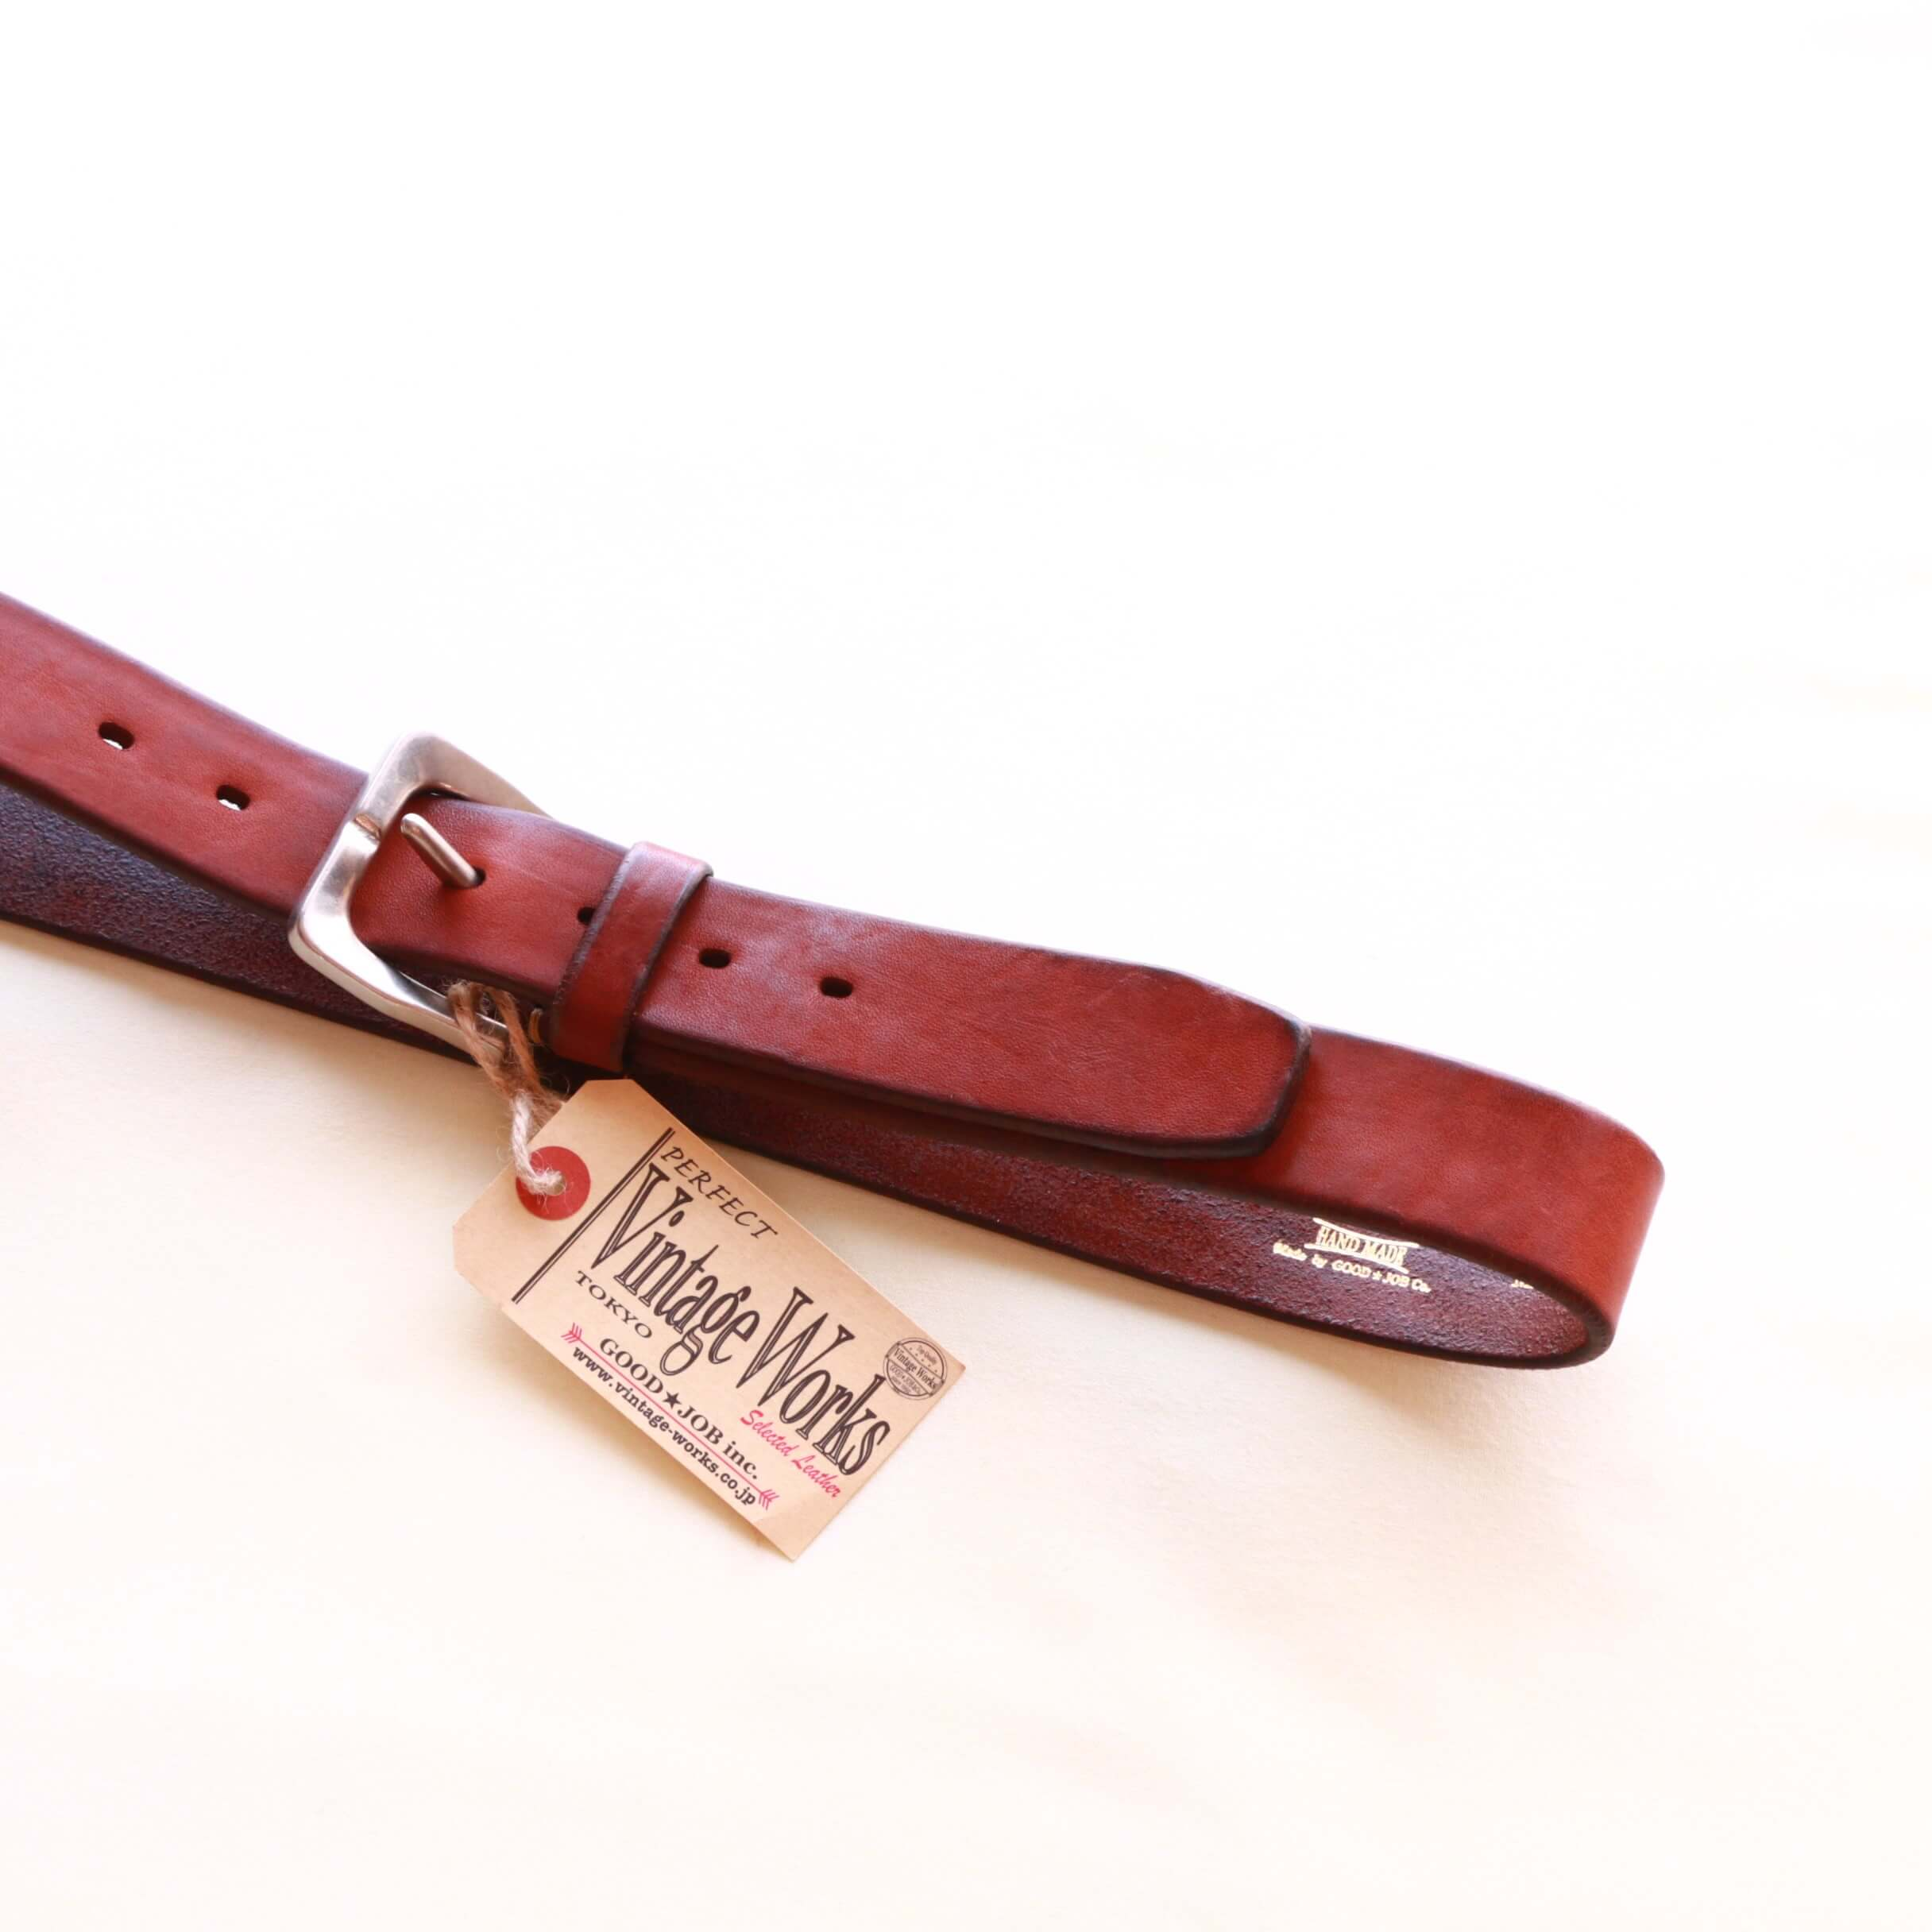 Vintage Works ヴィンテージワークス Leather belt レザーベルト DH5662